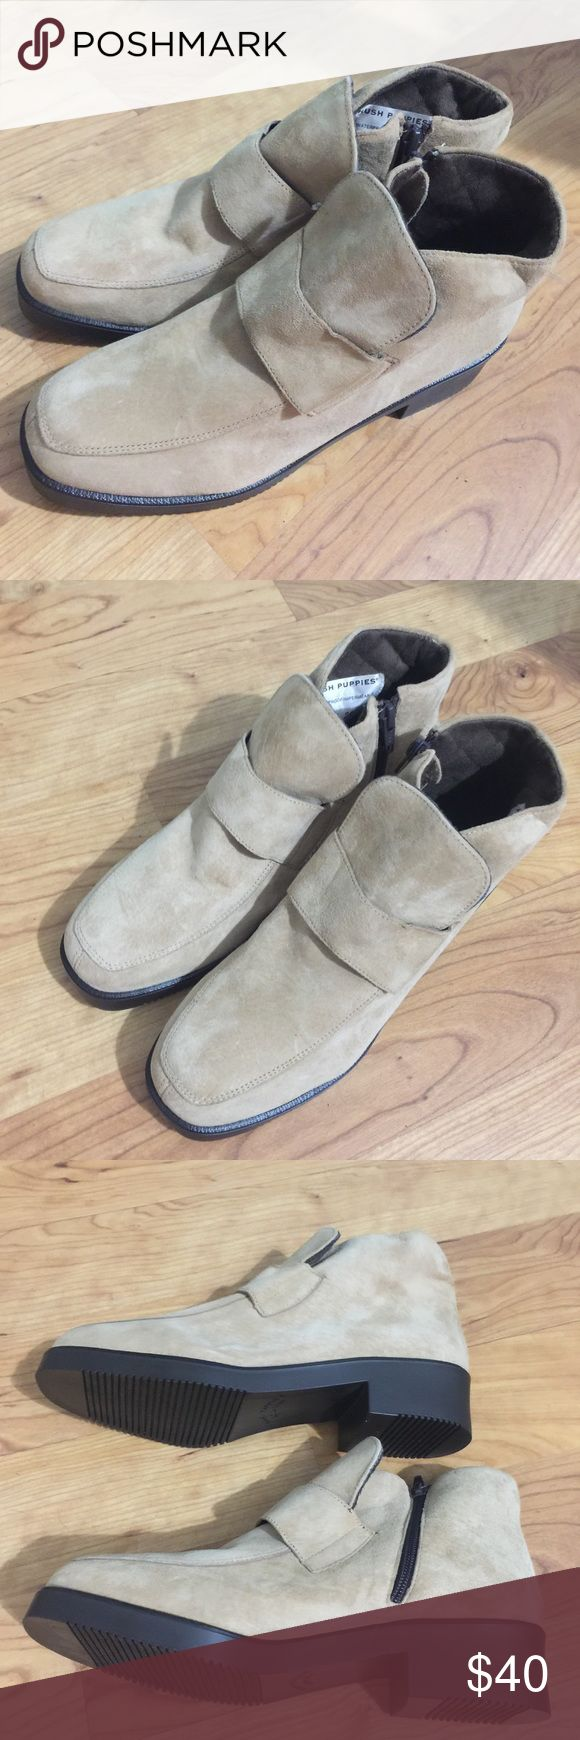 Hush Puppies Side zip waterproof ankle boot NEW New! Never worn! One scuff from knocking against another pair of shoes. Quilted interior suede outside. Super cute! Any questions please ask! Hush Puppies Shoes Ankle Boots & Booties